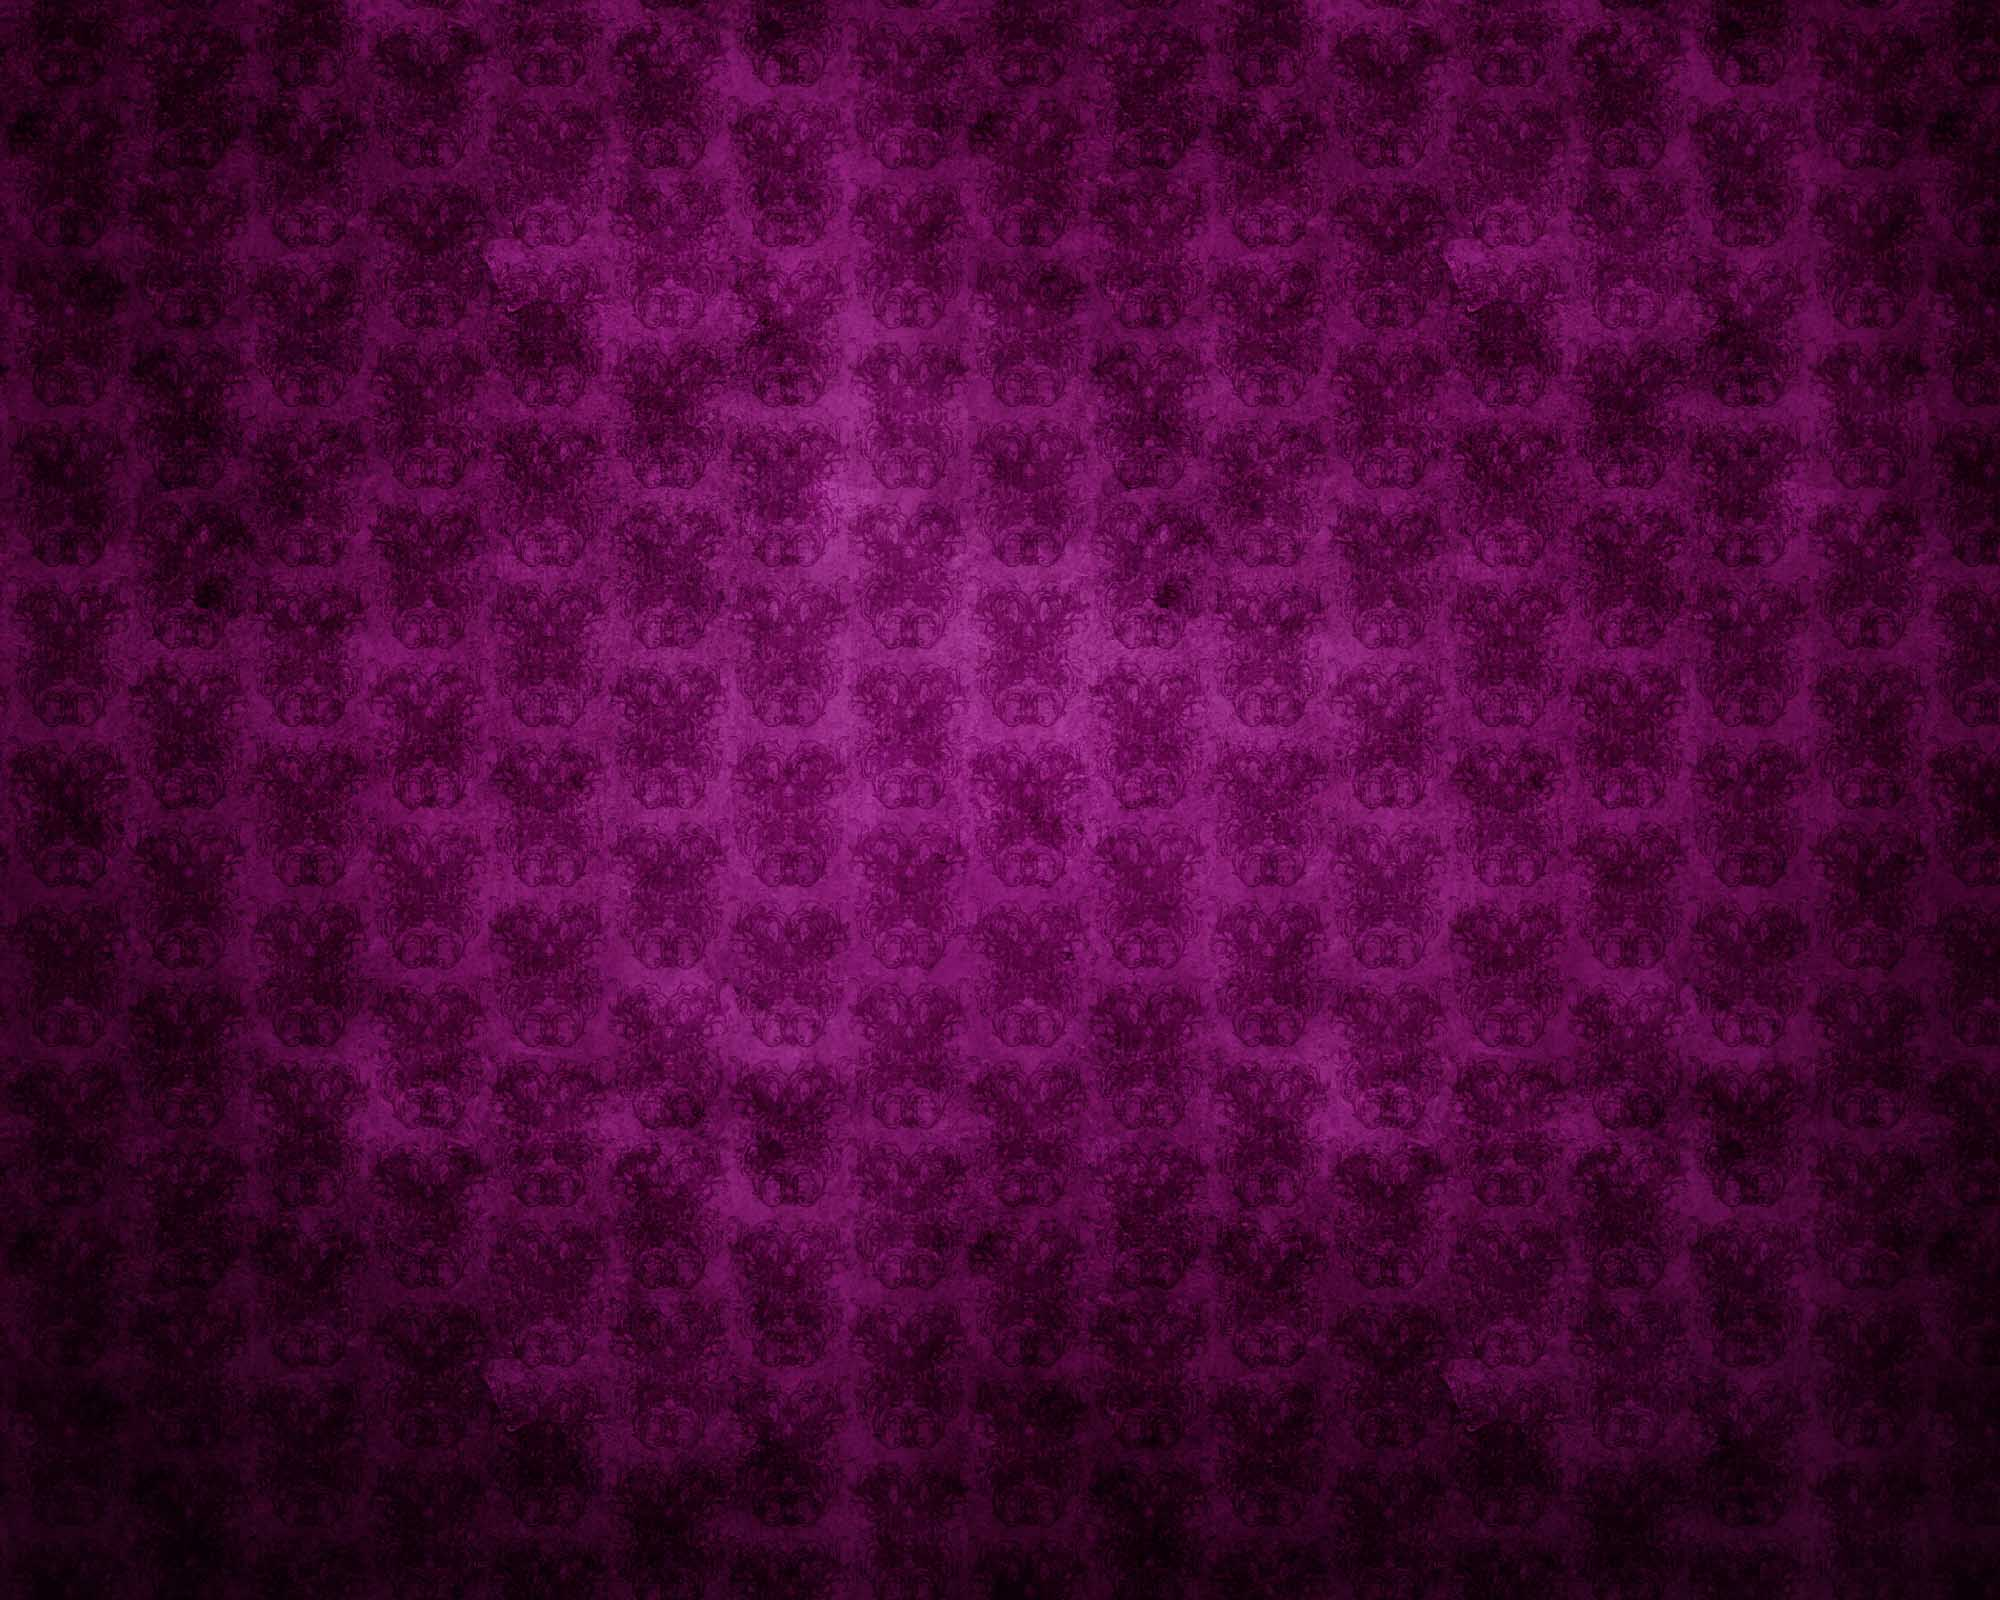 purple images